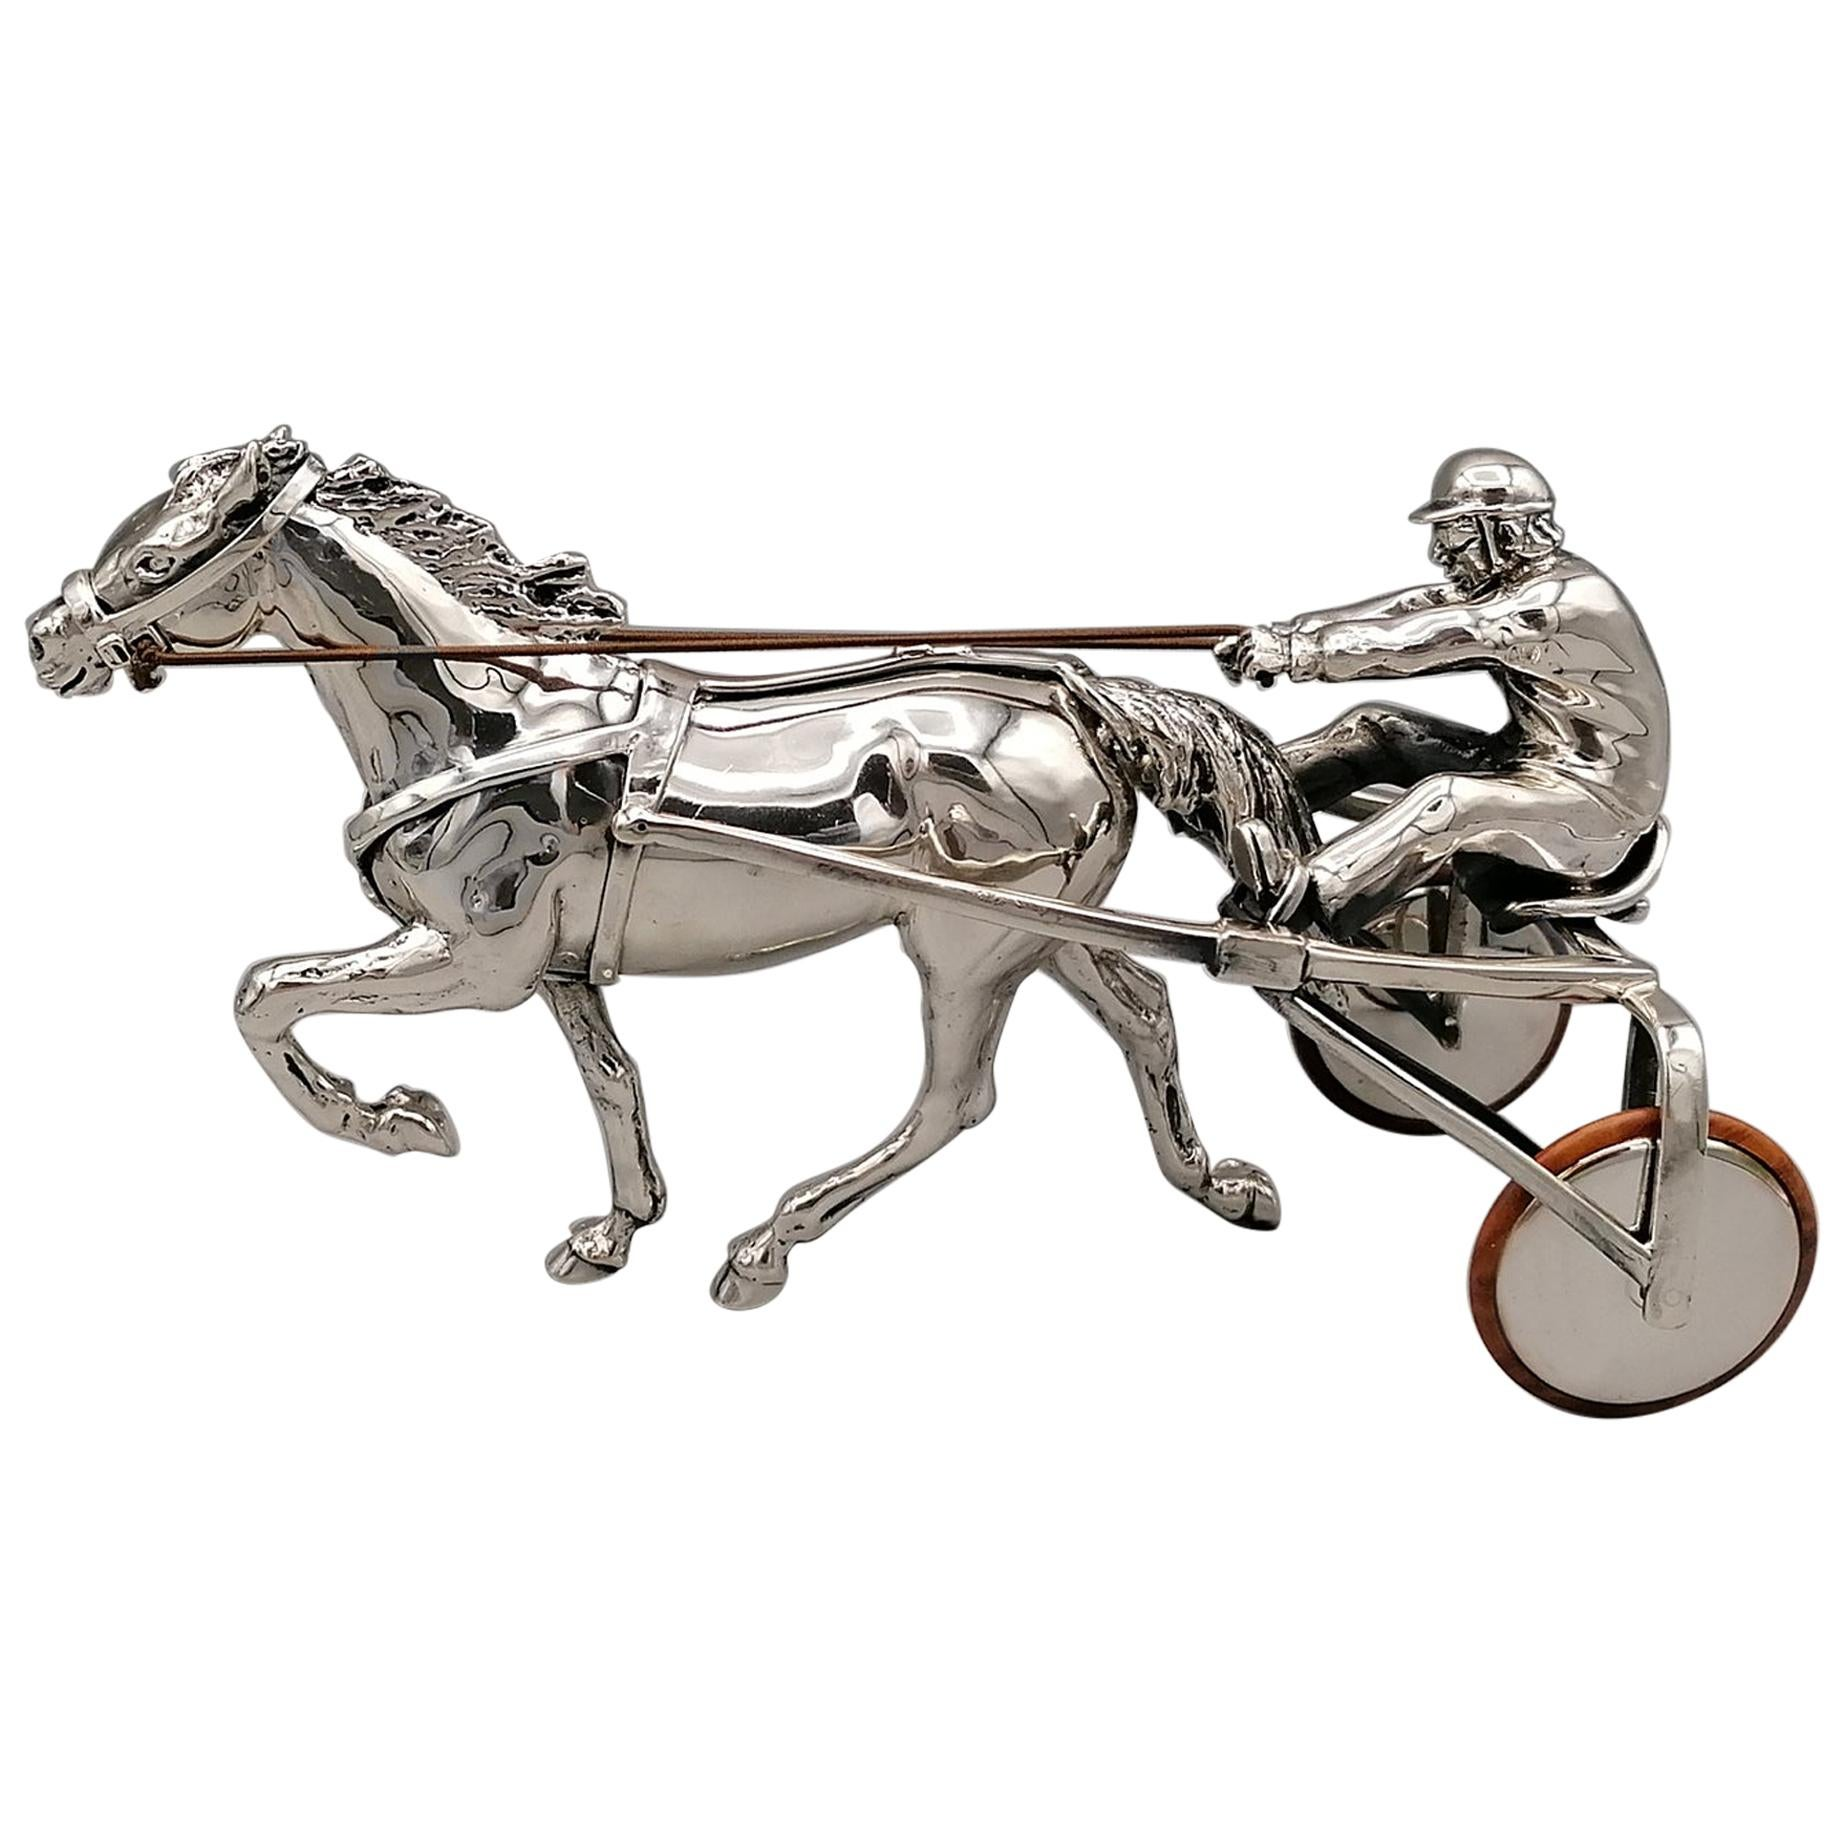 20th Century Italian Sterling Silver Sulky with Horse and Driver